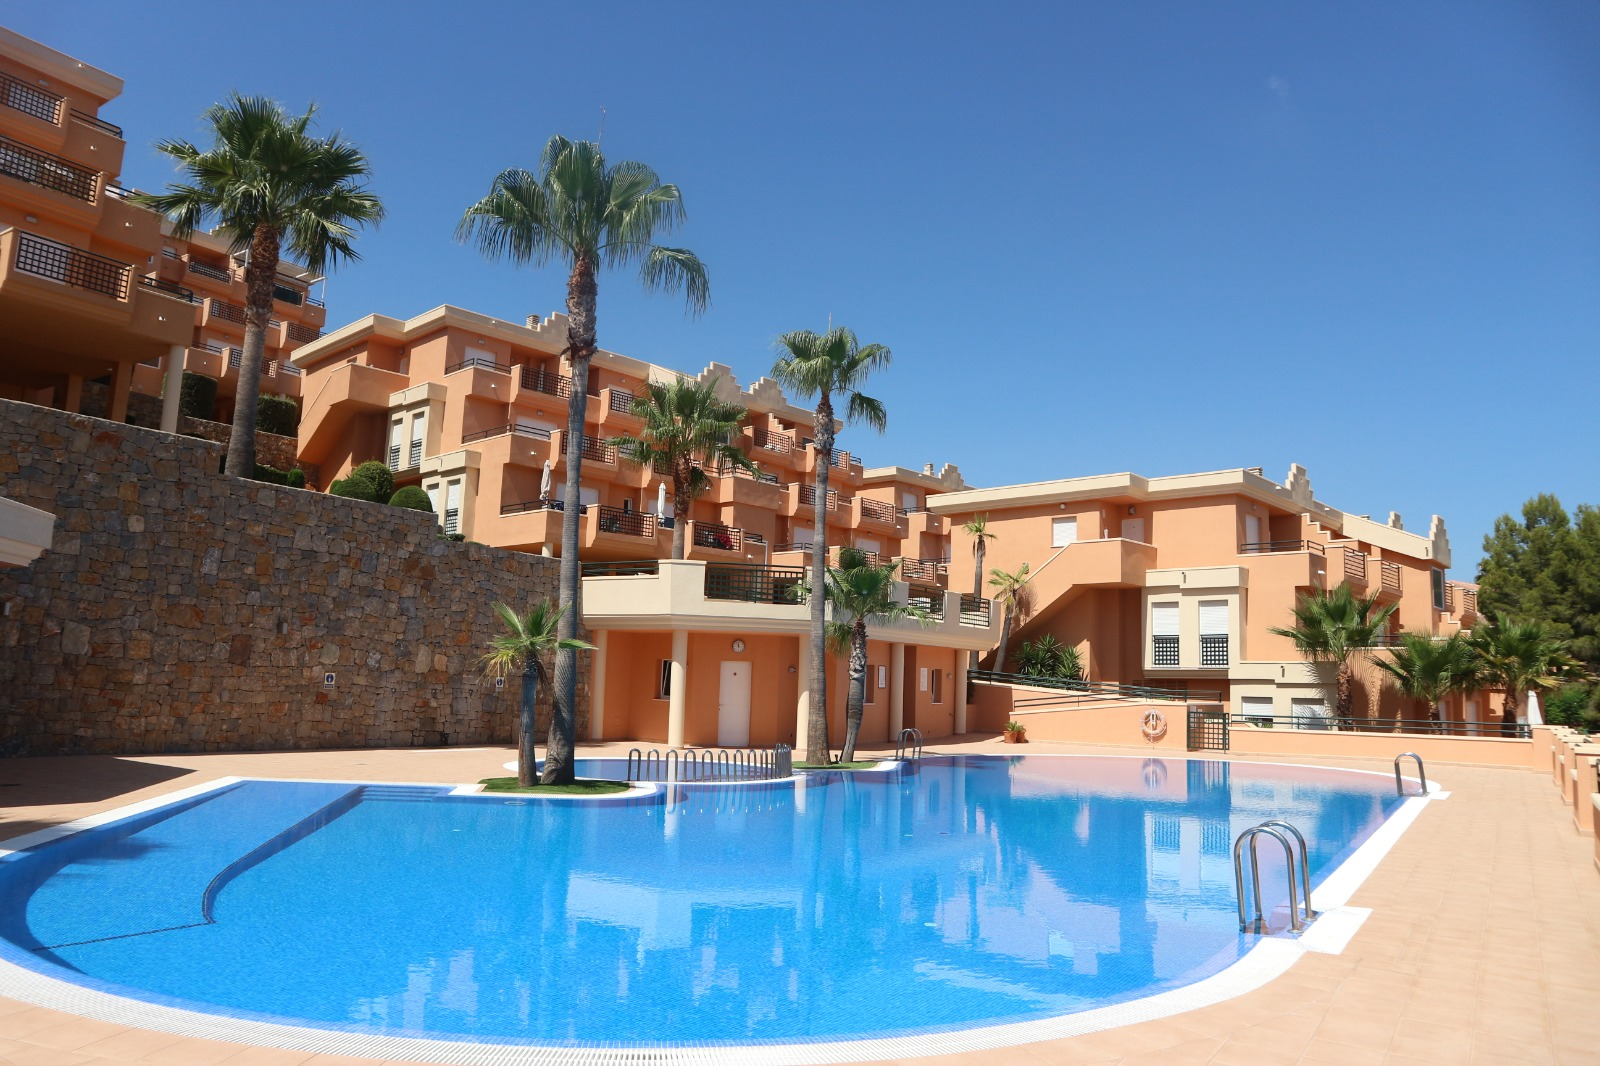 Denia apartment For Sale: